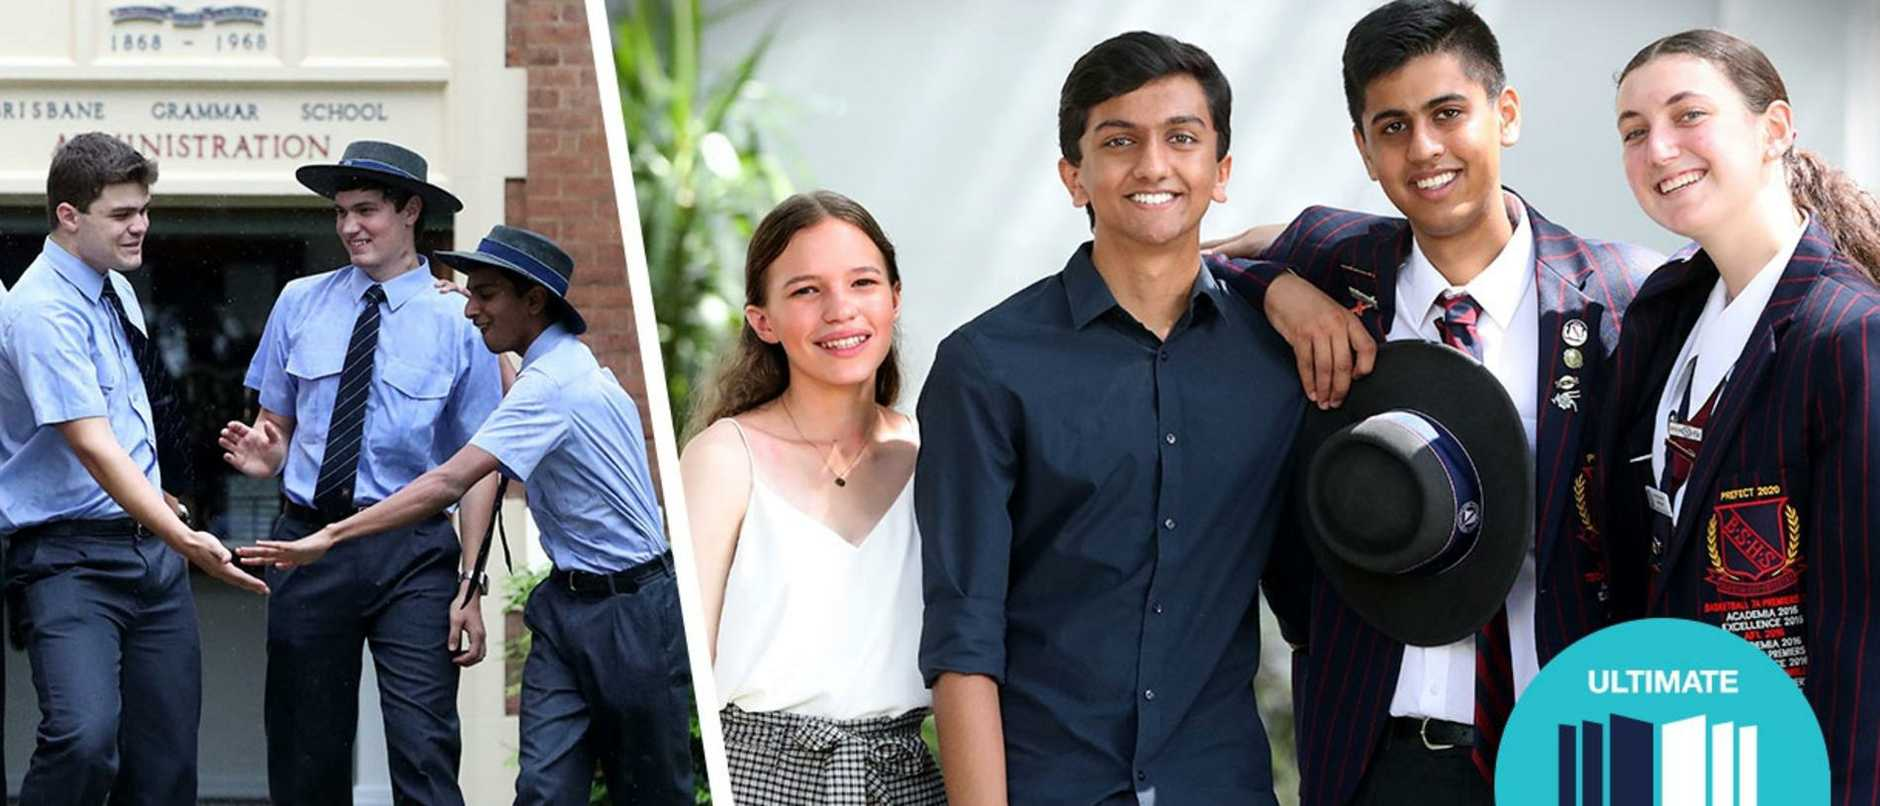 Two public schools have toppled private schools to take the crown of the best performing OP schools in Year 12 results. SEARCH HOW YOUR SCHOOL RANKED